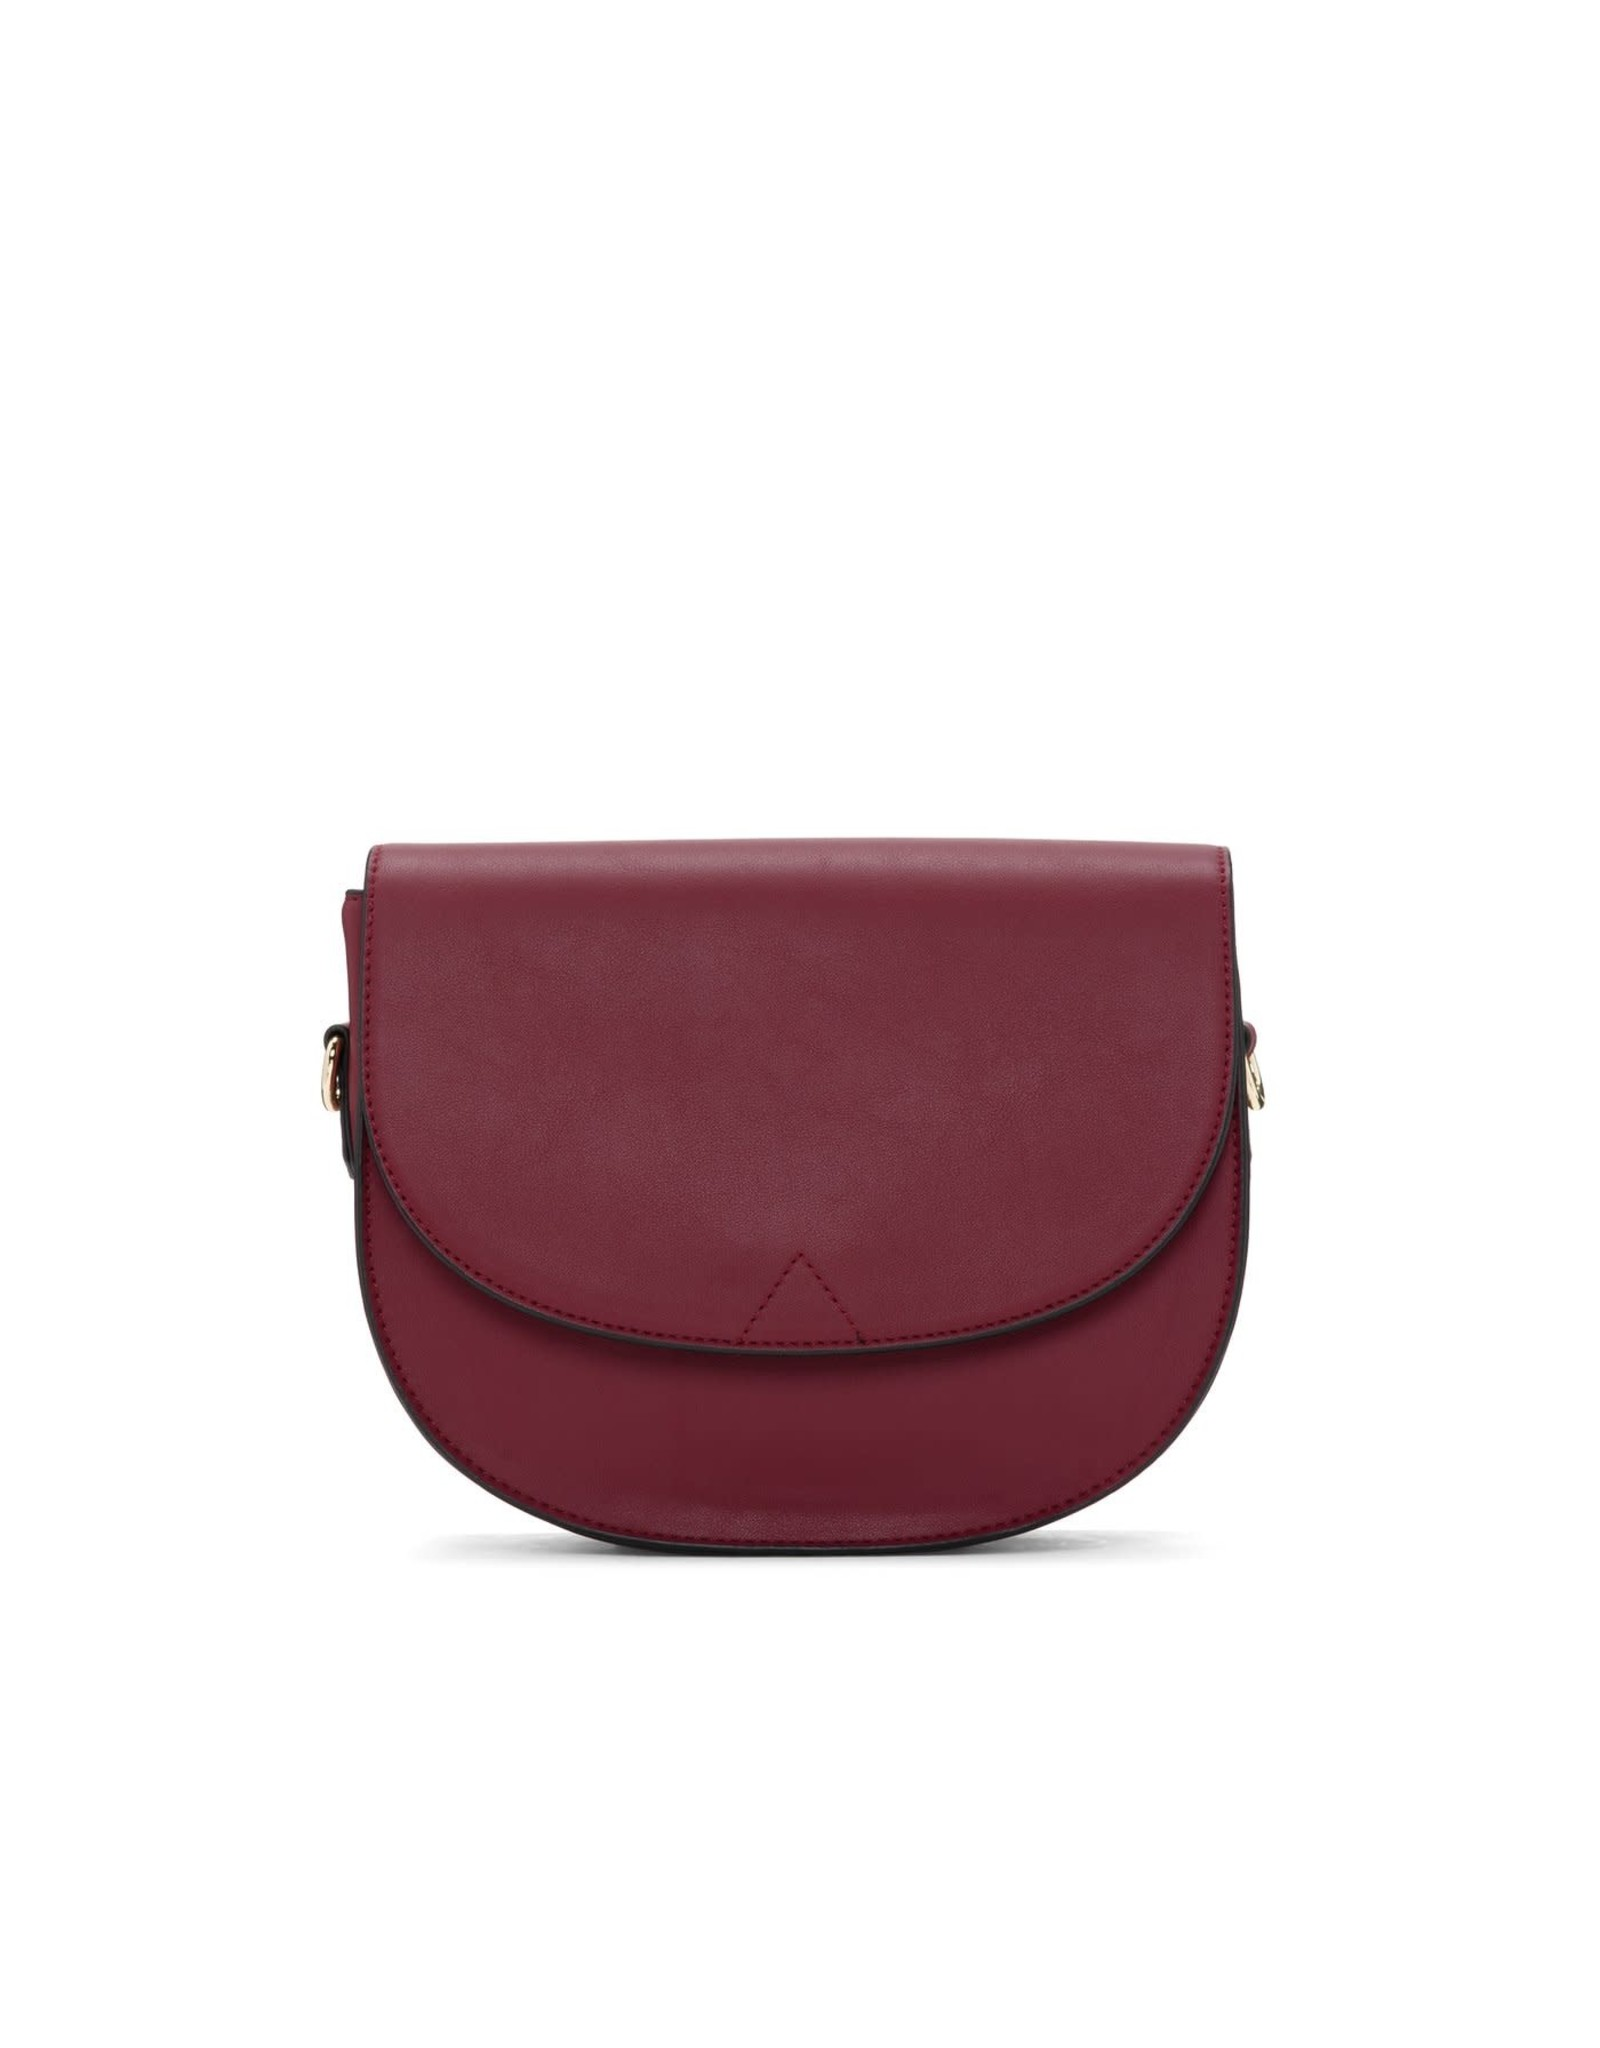 co-lab co-lab Tailored Saddle Bag